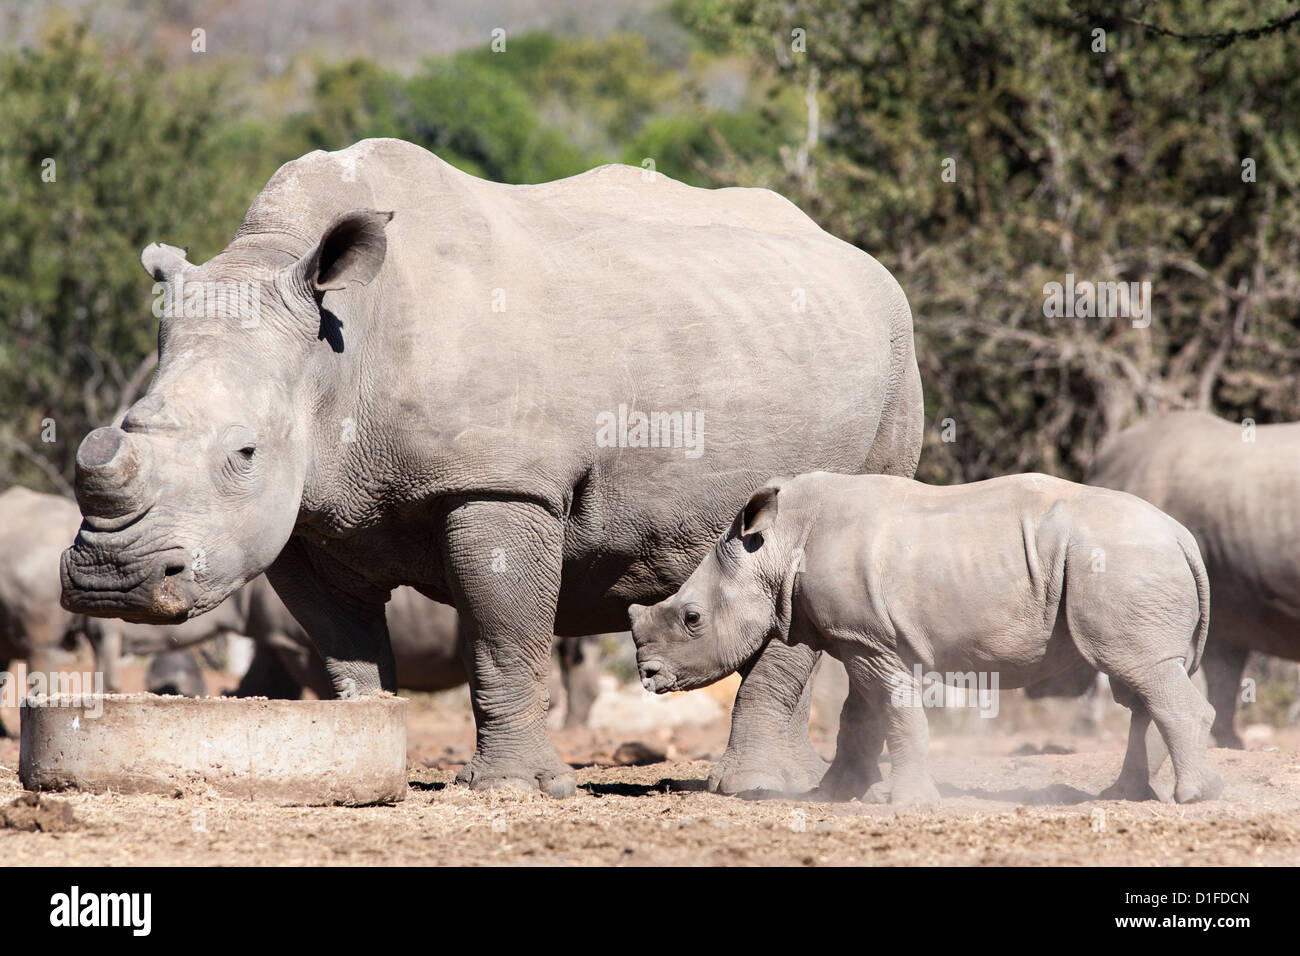 Dehorned white rhino (Ceratotherium simum) with calf, Mauricedale game ranch, Mpumalanga, South Africa, Africa - Stock Image